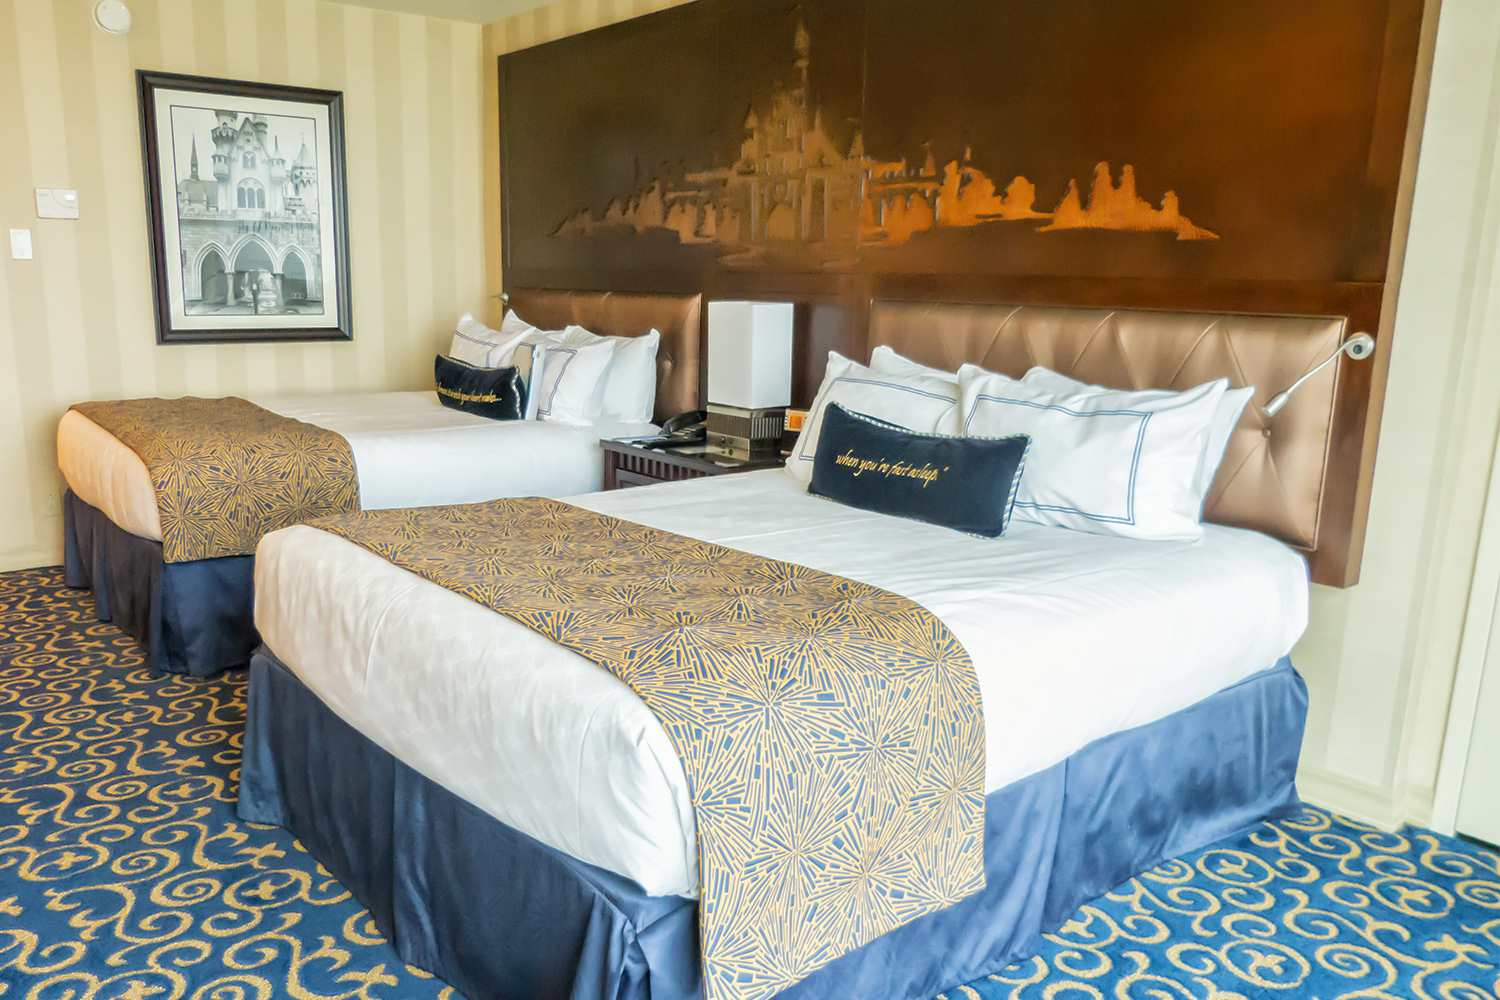 themed bedrooms for adults disney mickey mouse bedroom.htm proven insider tips for visiting the disneyland hotel  disneyland hotel